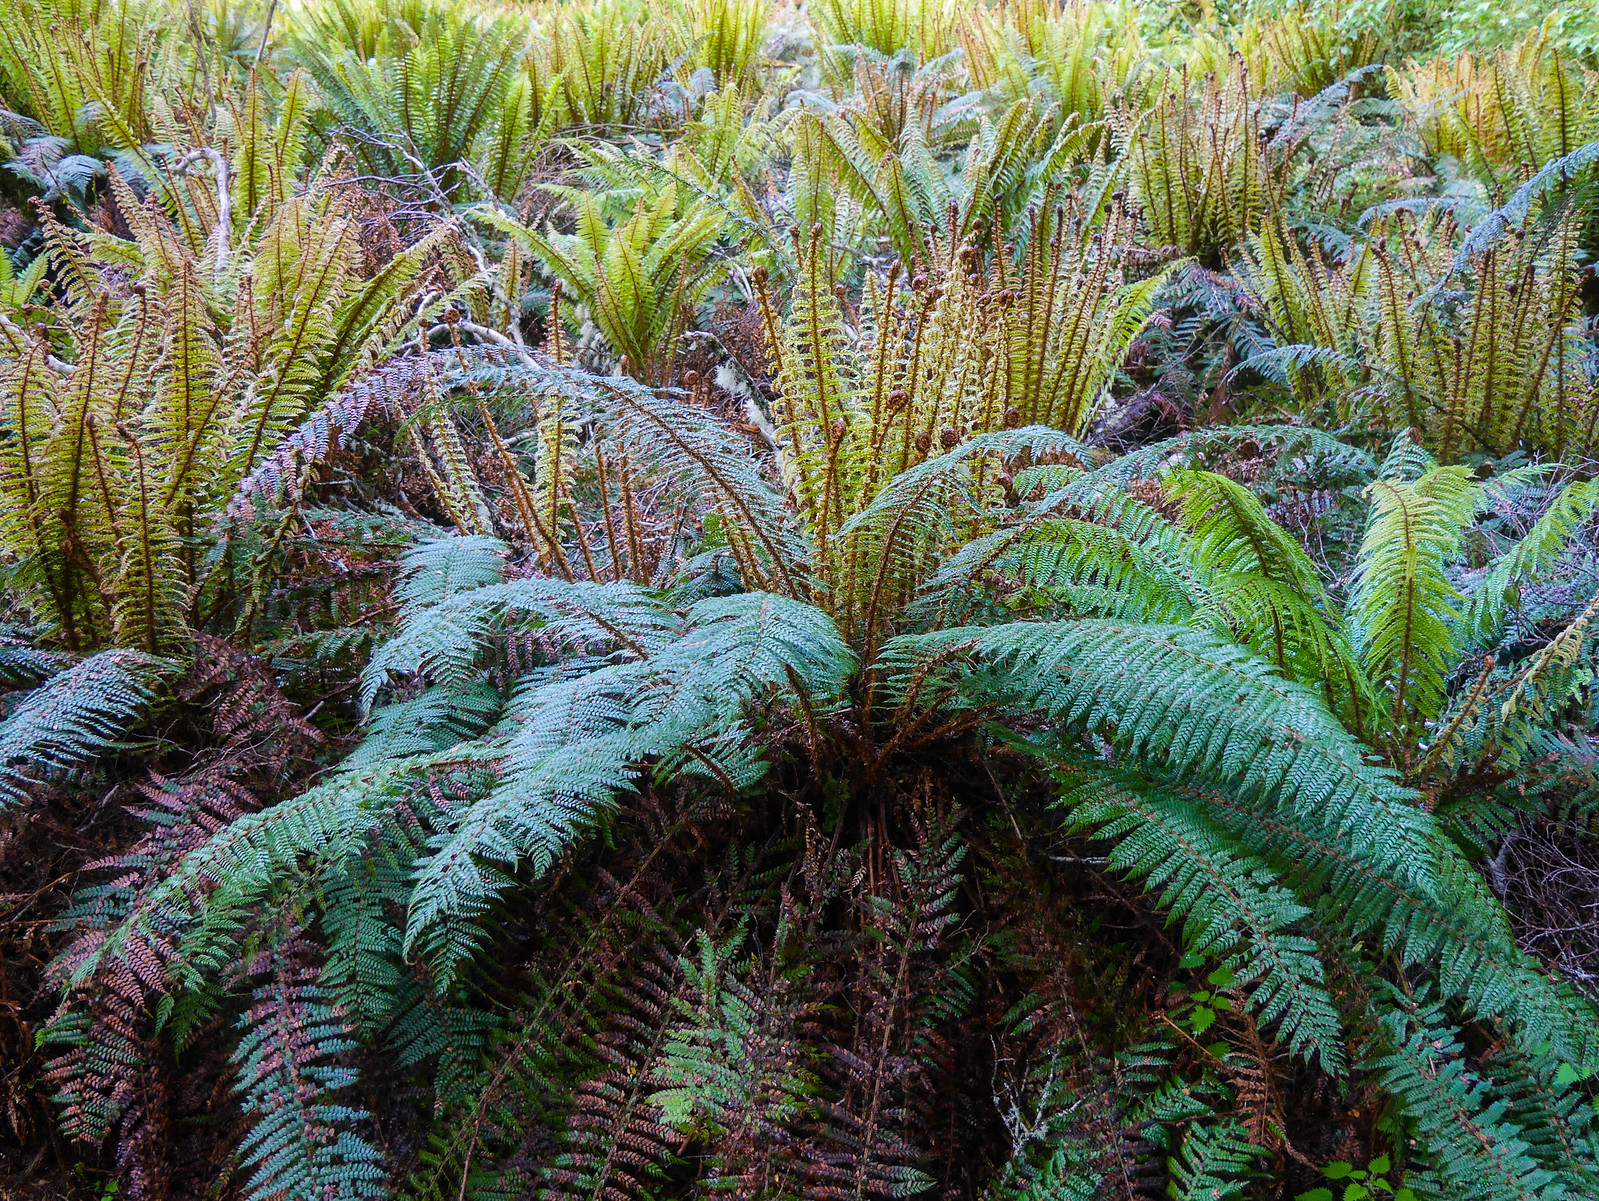 Ferns everywhere